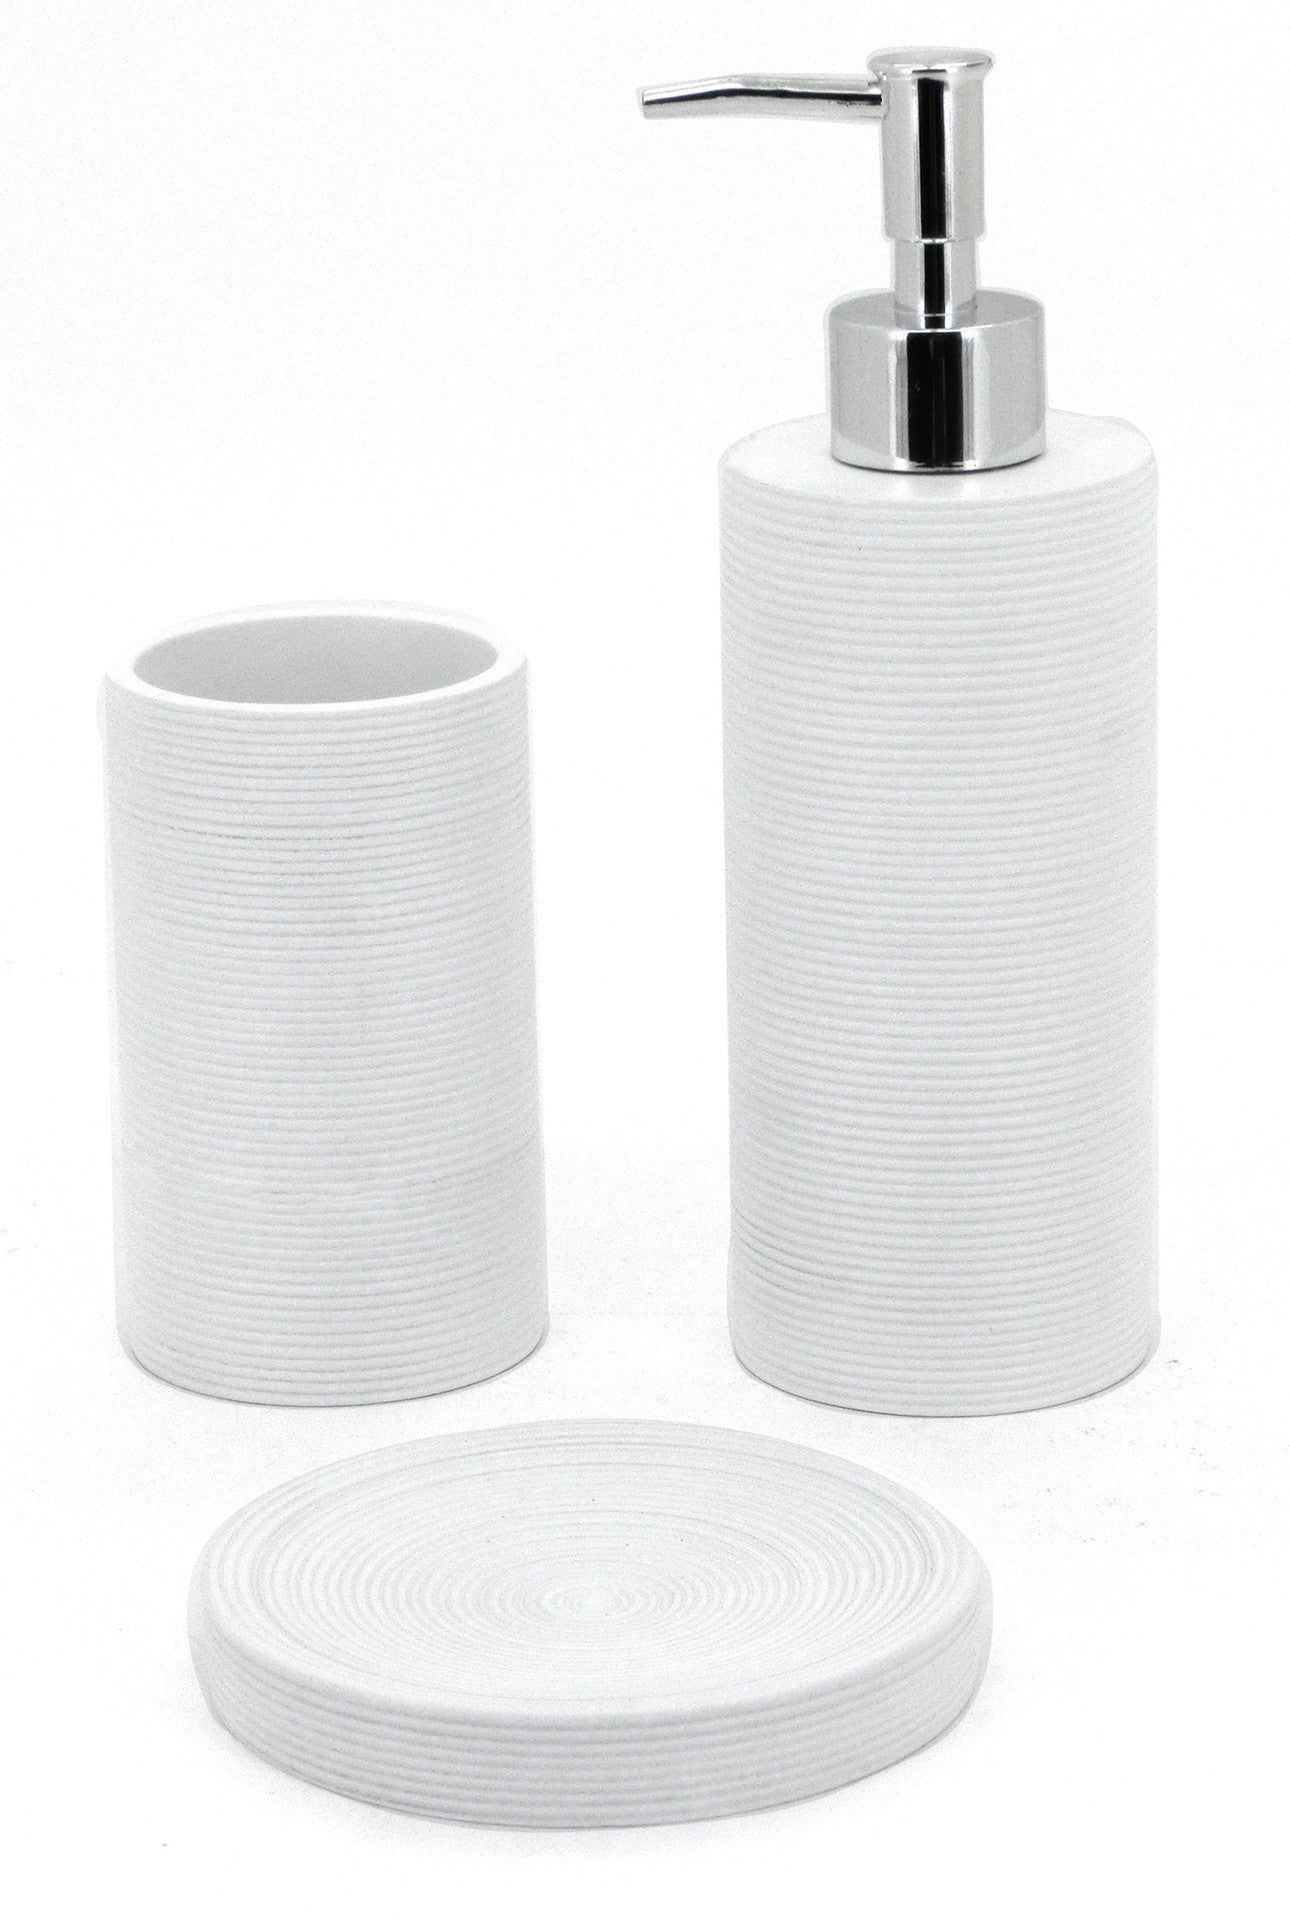 Sabichi White Lines 3pc Accessory Set- 172778 - Homely Nigeria